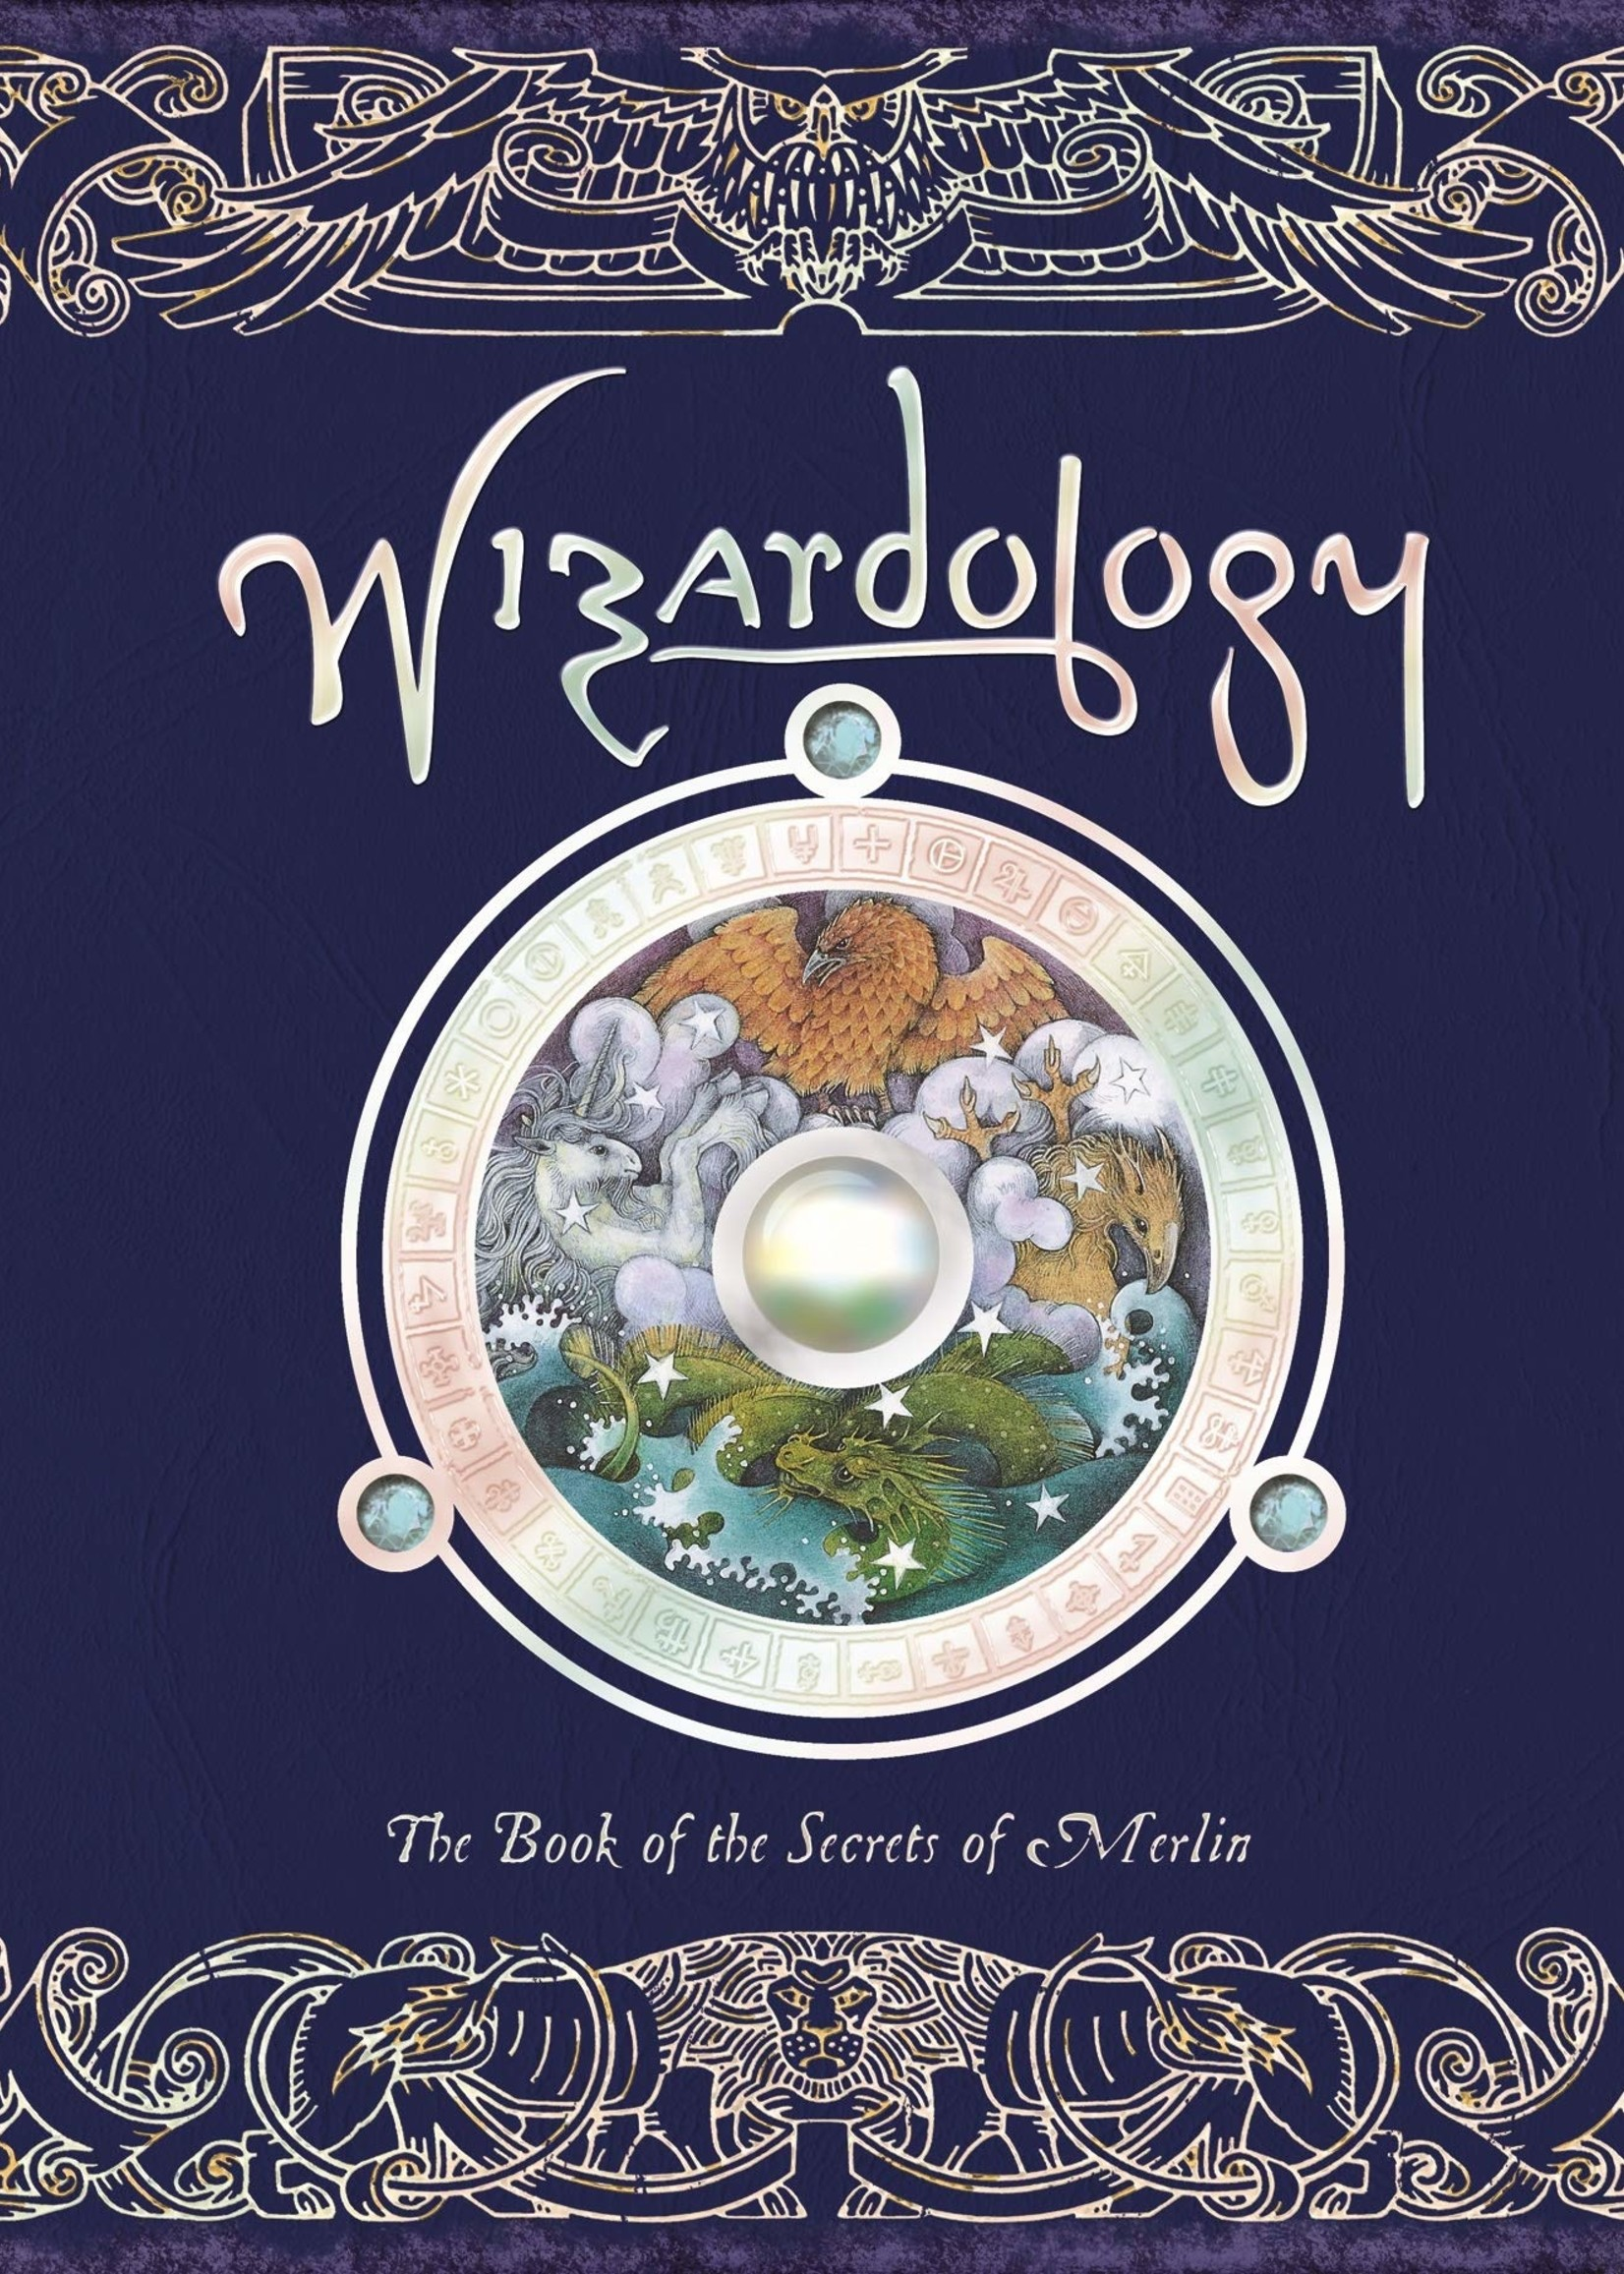 Wizardology, The Book of the Secrets of Merlin - Hardcover